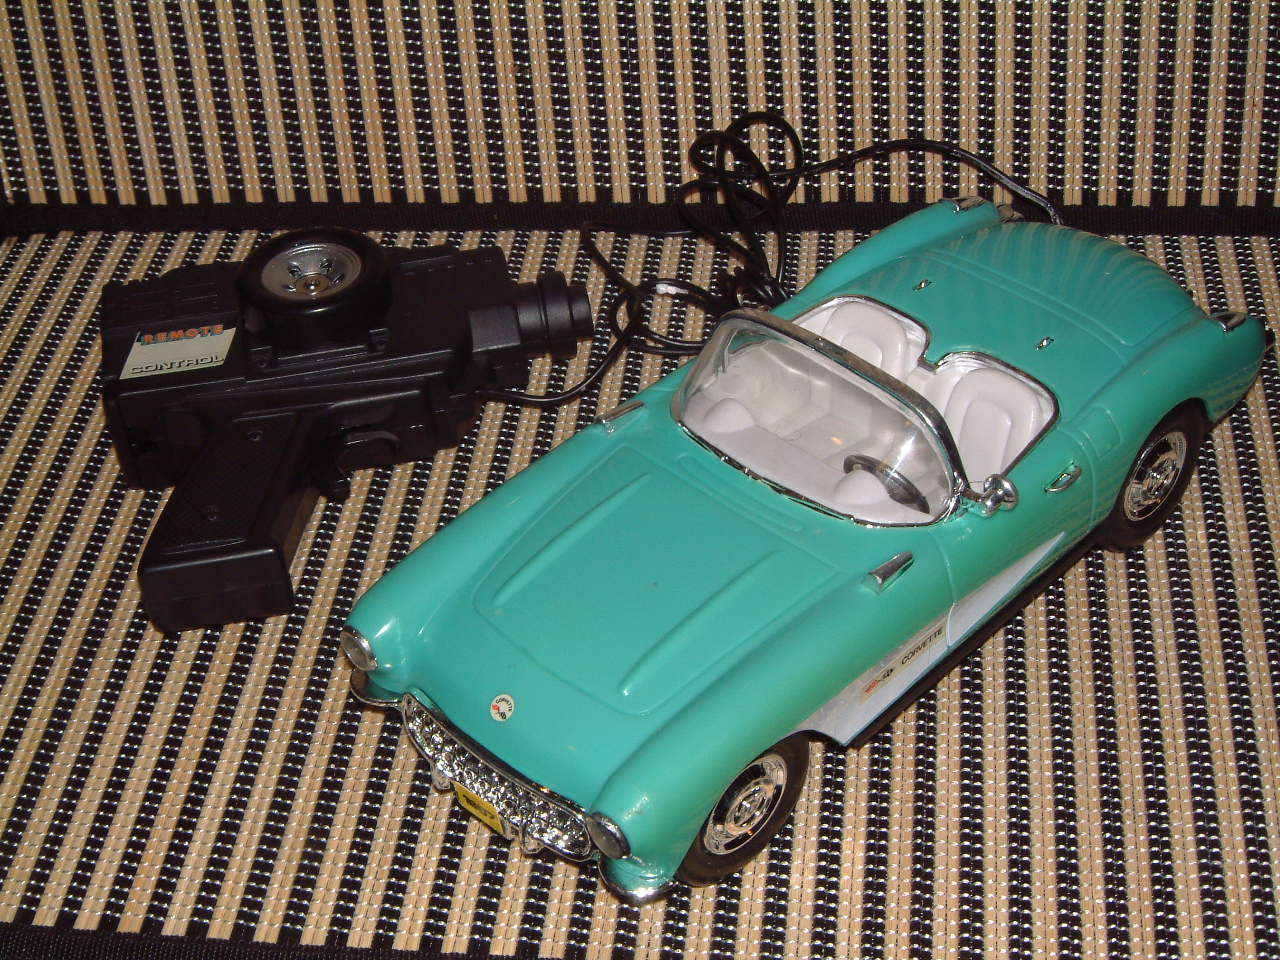 CALIFORNIA CONgreenIBLE CONgreenIBLE CONgreenIBLE NOS TETHERED REMOTE CONTROLLED CORVETTE IN ORIGINAL BOX   aadb47